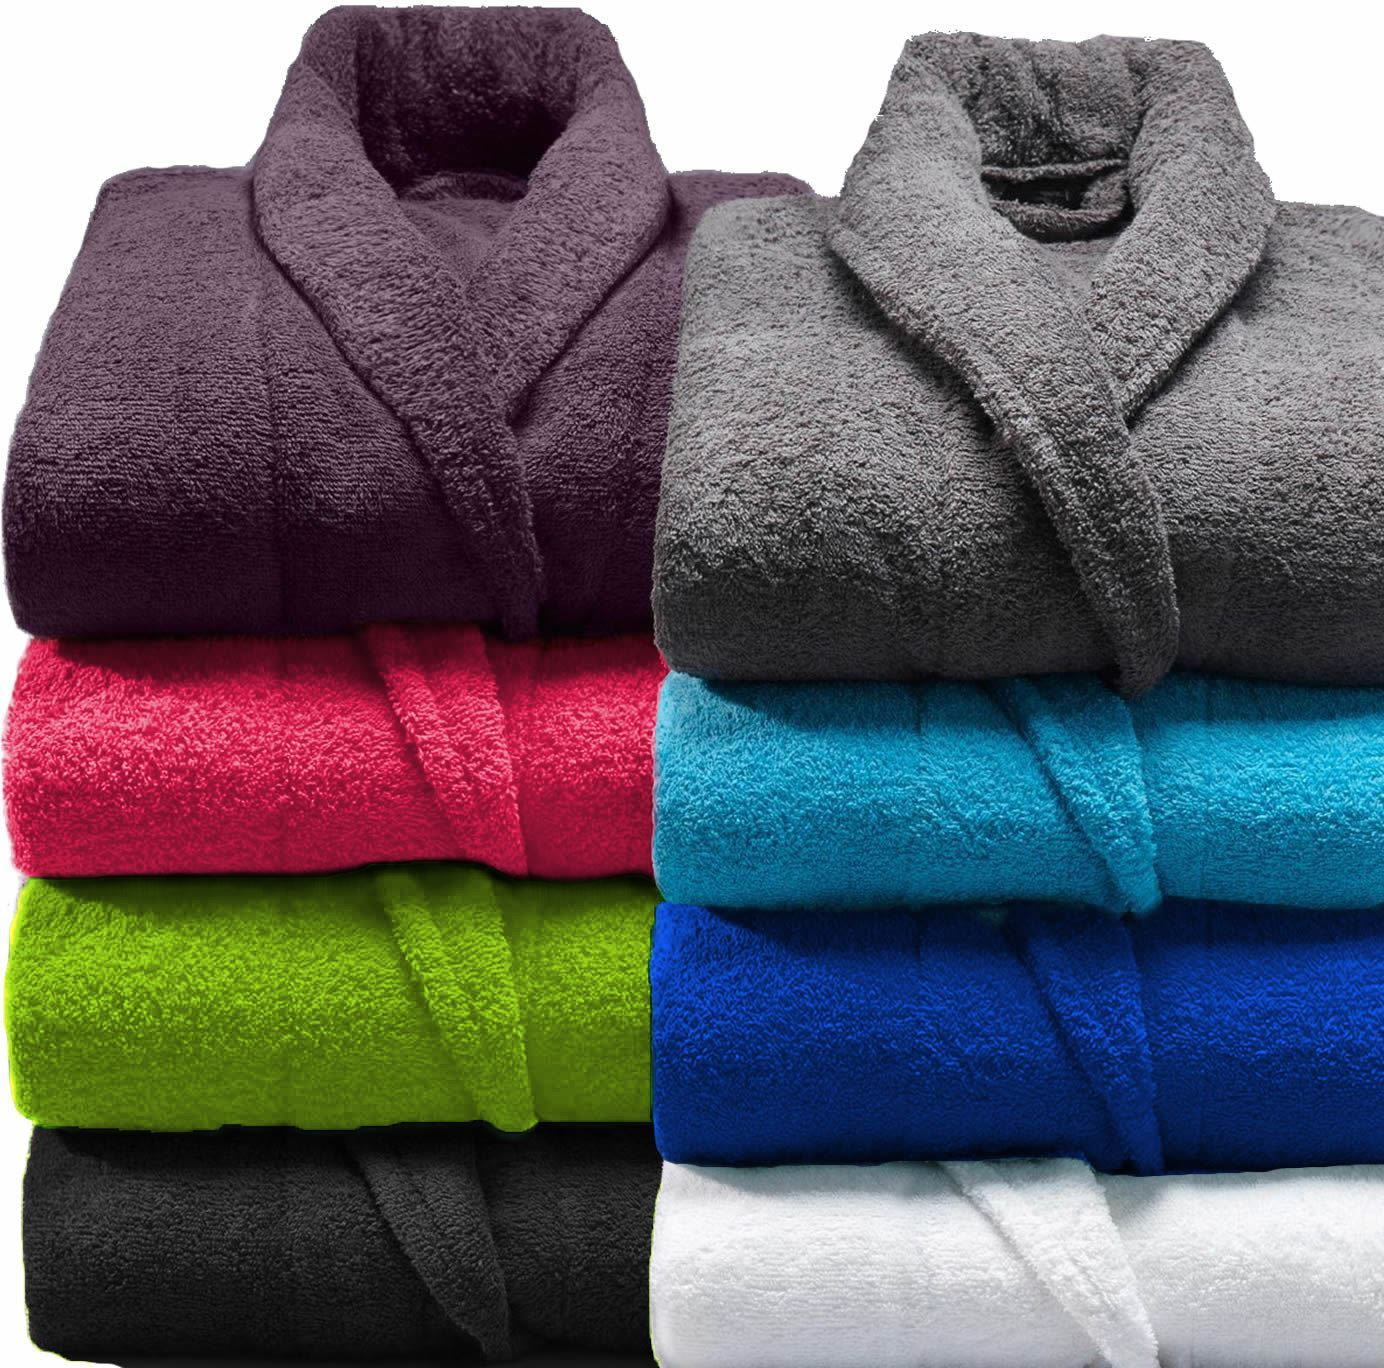 Details about Mens   Ladies 100% Cotton Terry Towelling Shawl Bathrobe  Dressing Gown Bath Robe 5a756321b